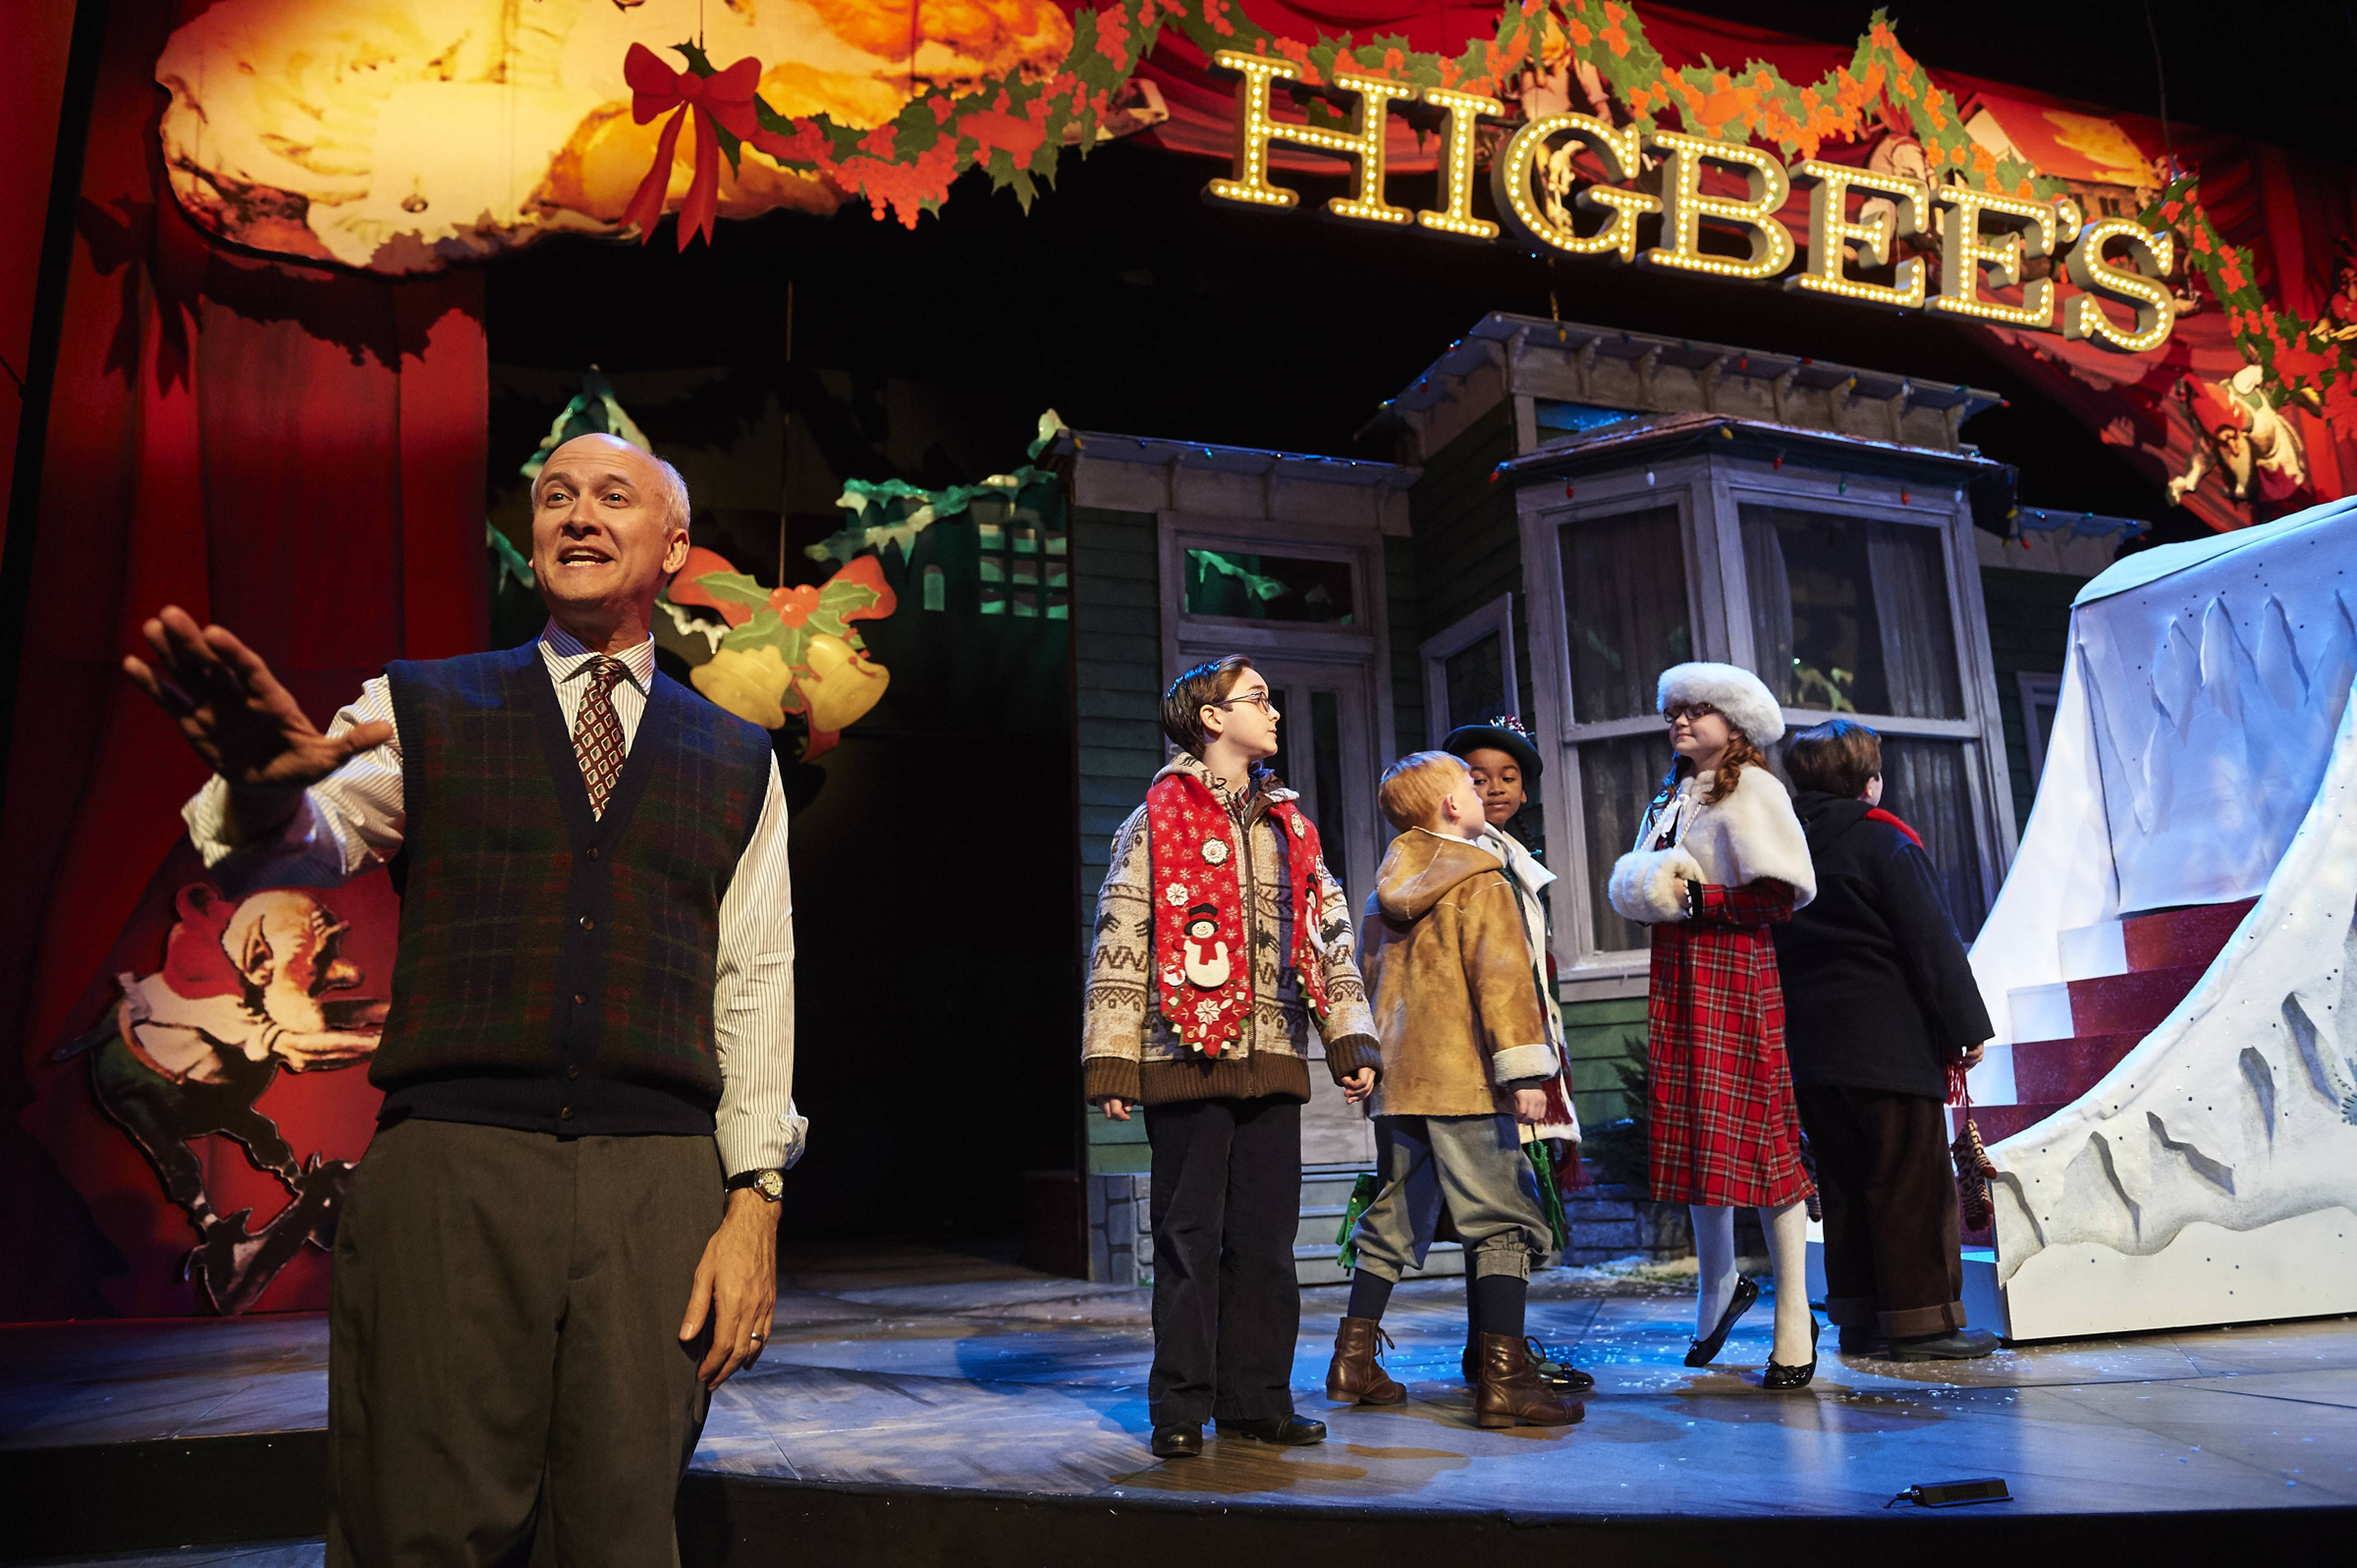 a christmas story cleveland play house 216 241 6000